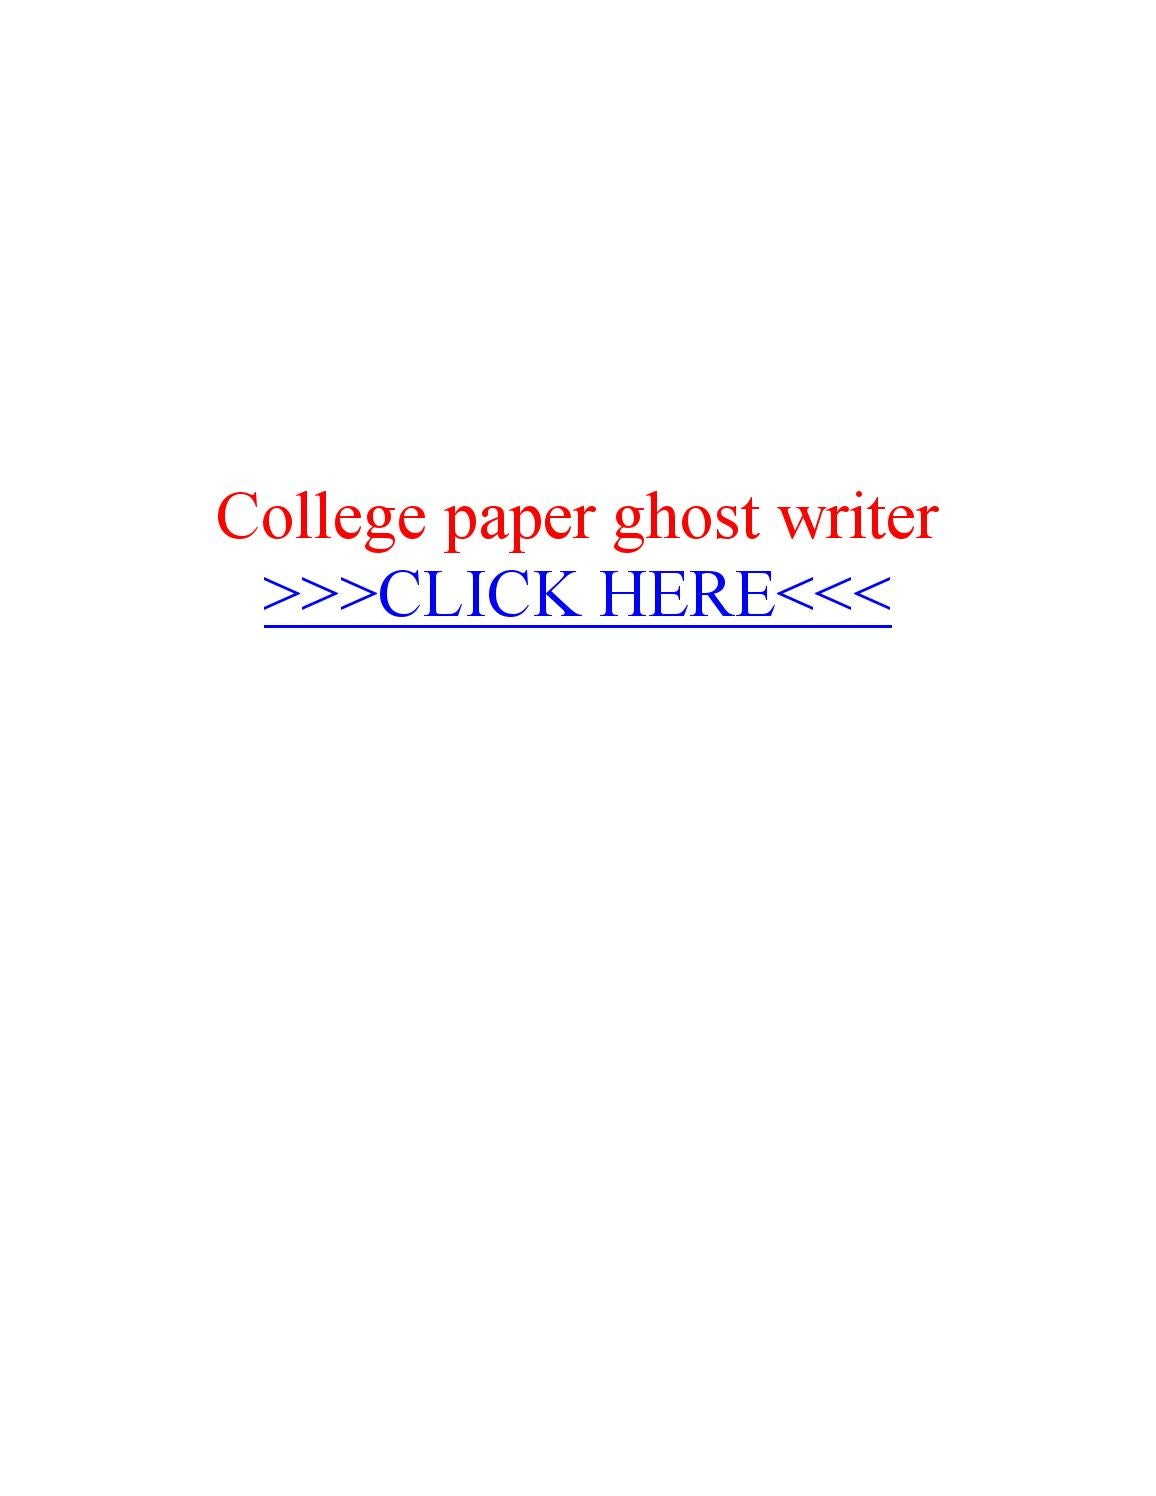 College paper ghost writer